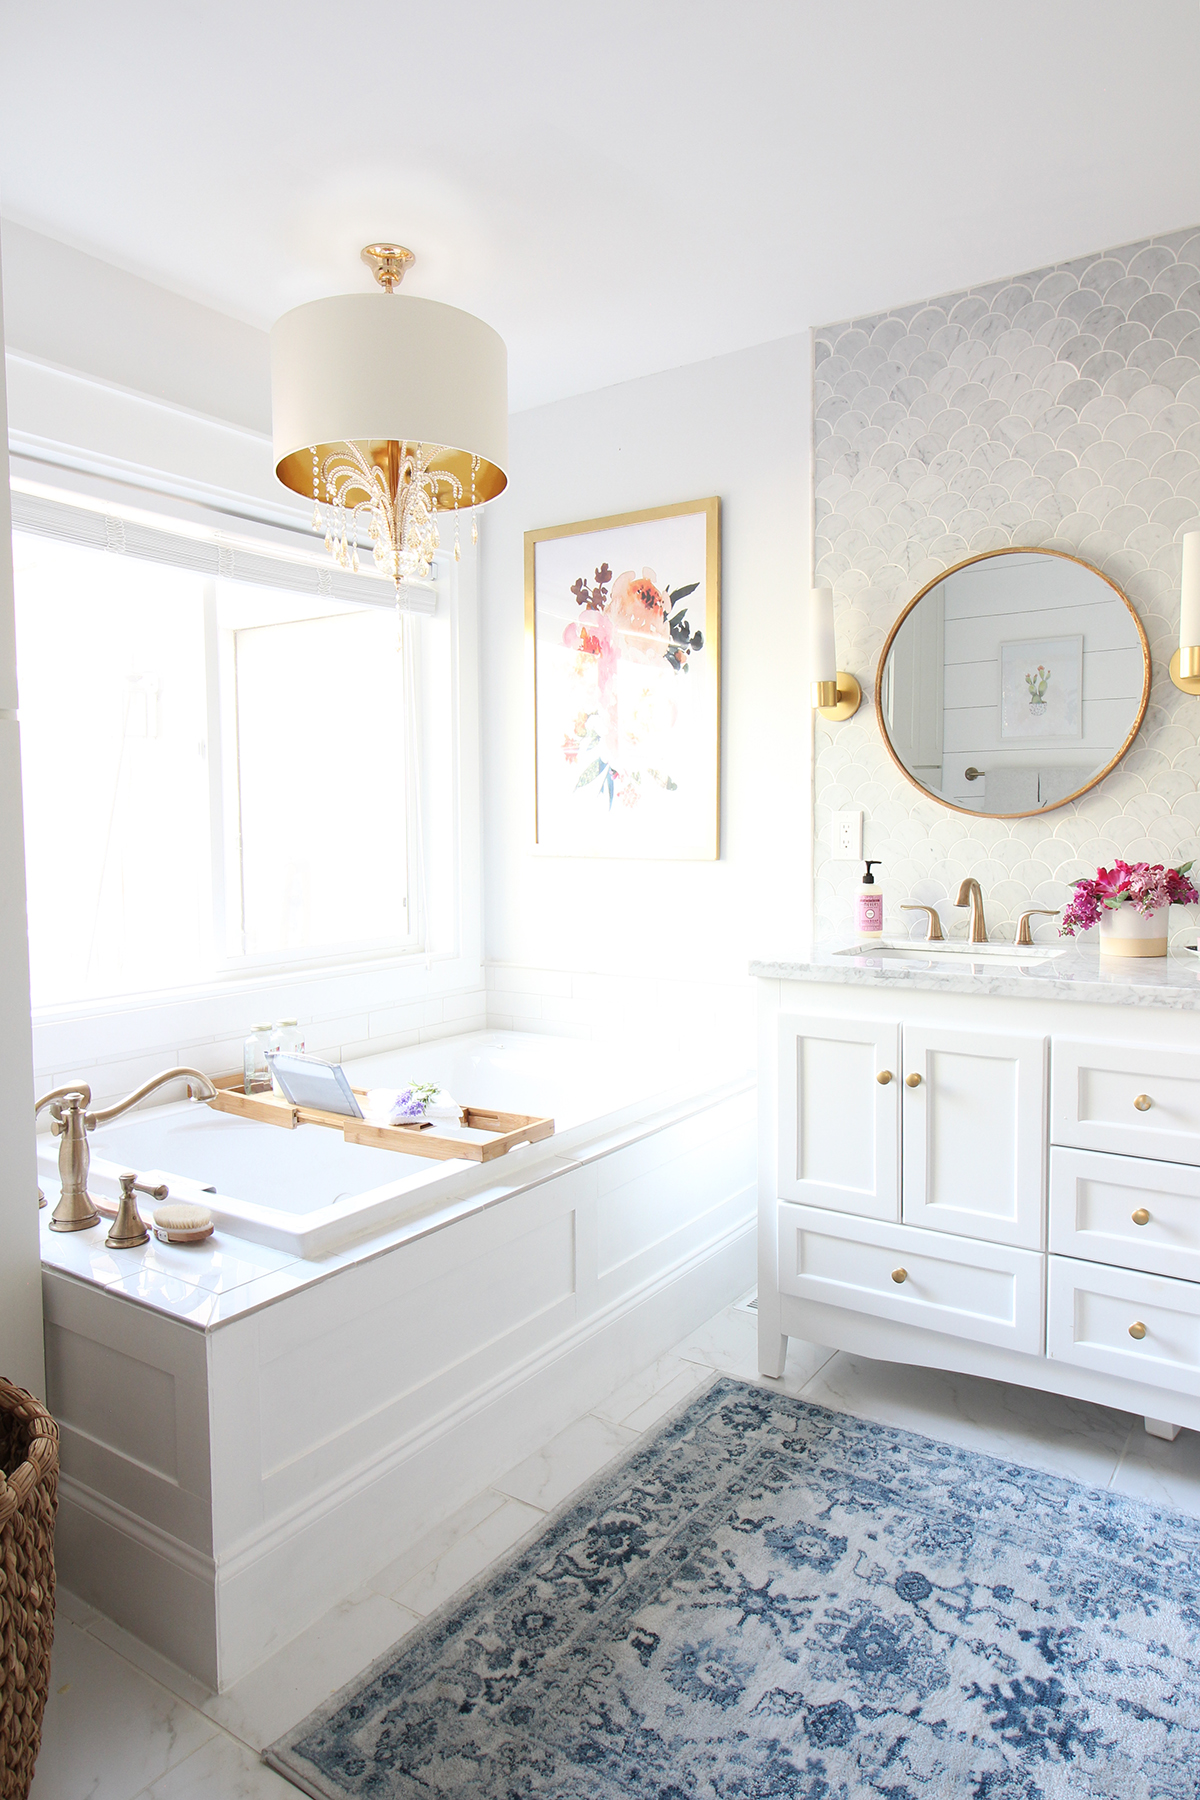 Prescott view home reno master bathroom reveal classy clutter the floors make the space look bright and clean i chose the carrara polished porcelain tile that looks exactly like real carrara marble but is so much more dailygadgetfo Choice Image